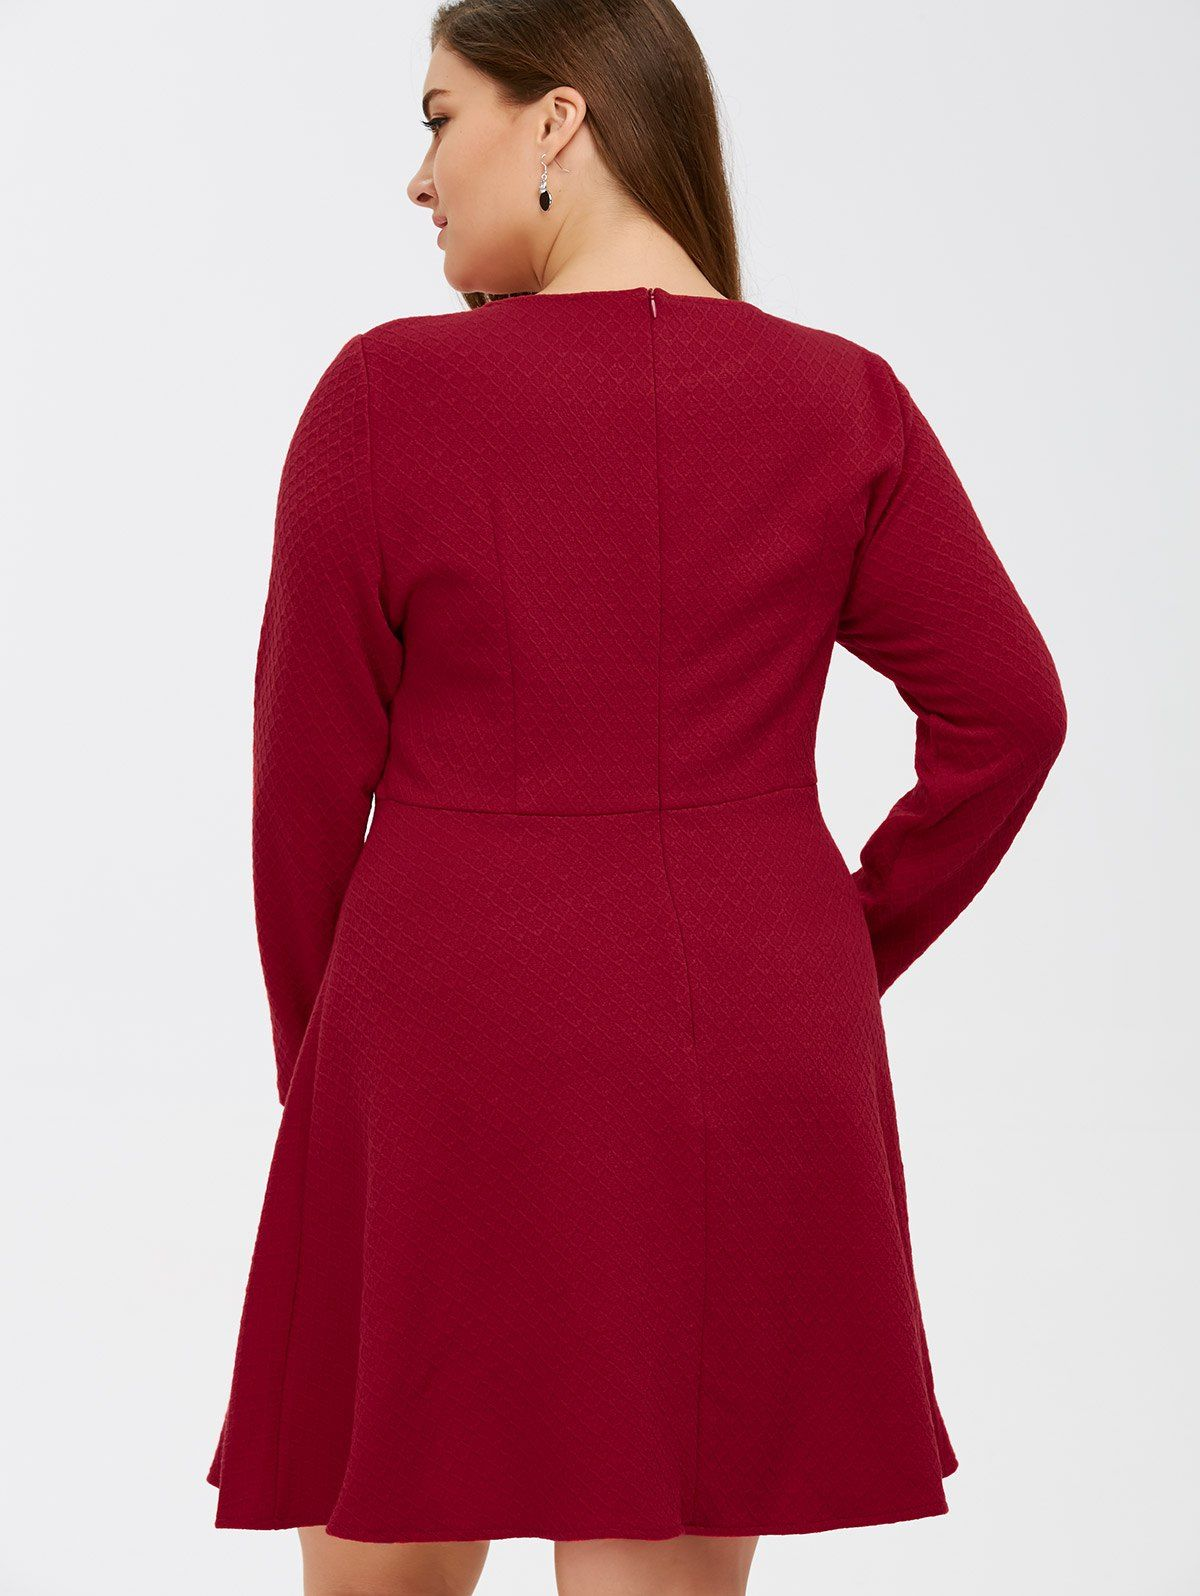 Grid Buttoned Long Sleeve Fit And Flare Dress Flare Dress Fit And Flare Dress Dresses [ 1596 x 1200 Pixel ]